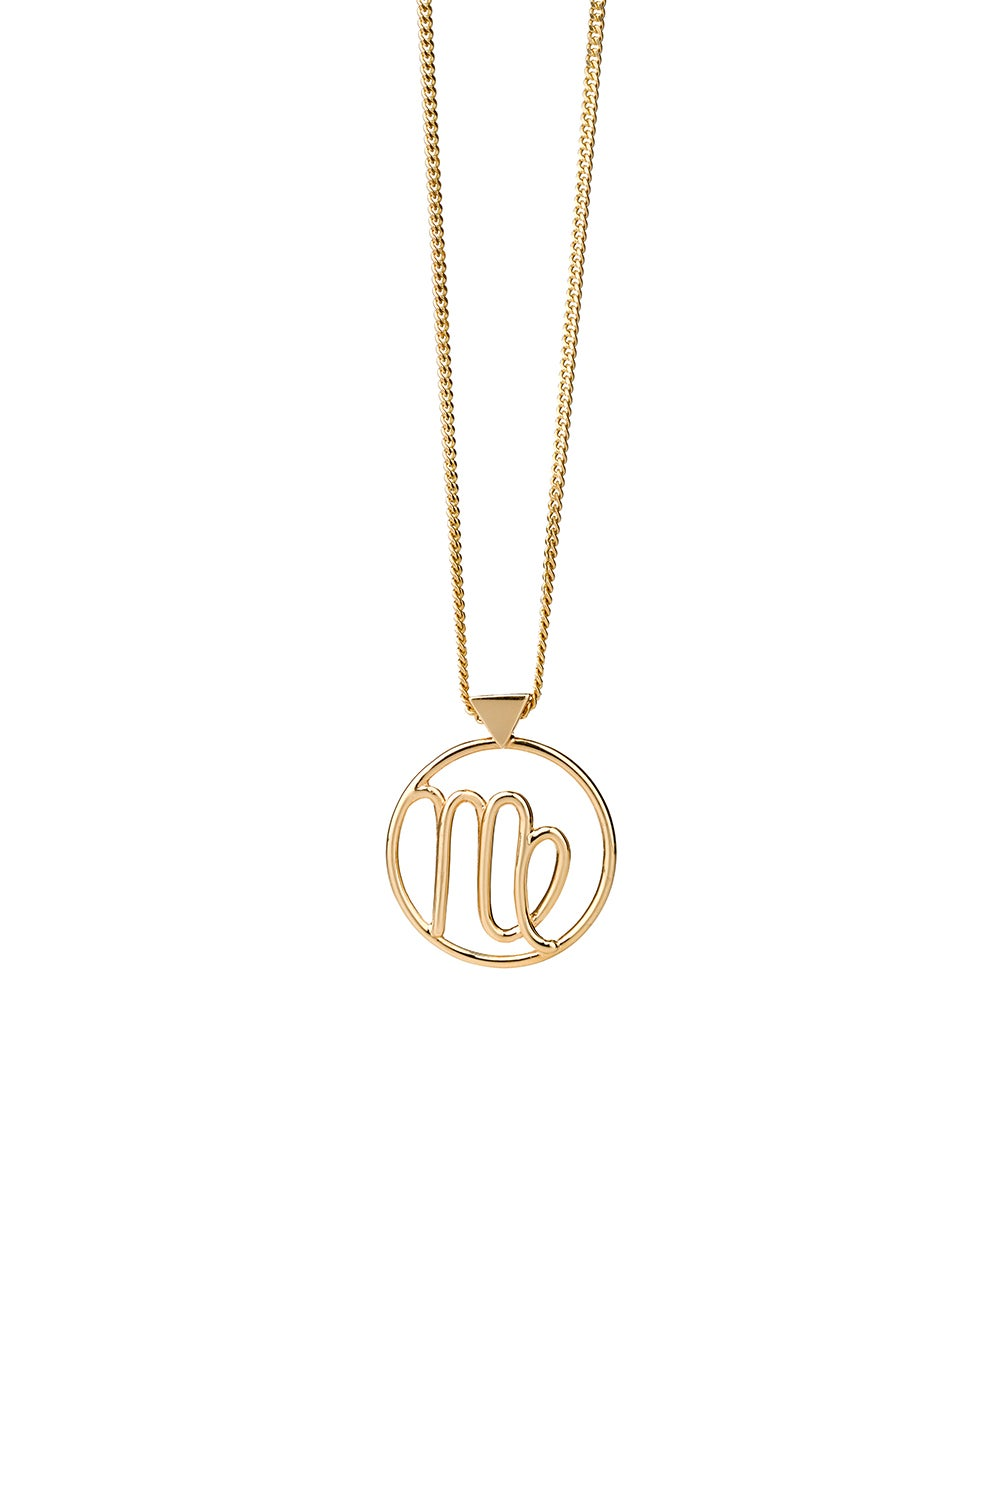 Virgo Necklace Gold